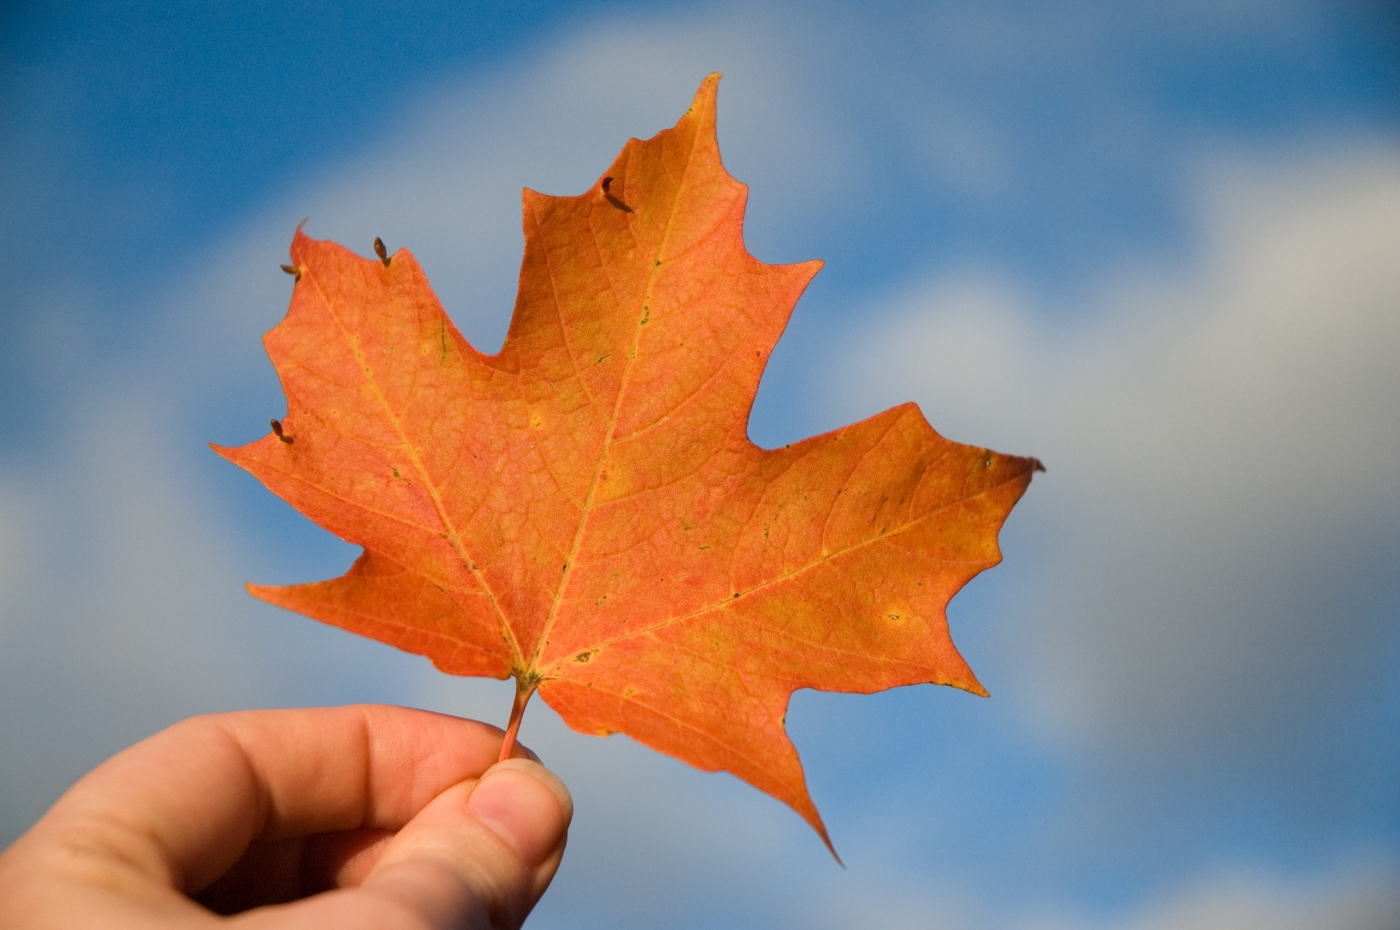 Maple leaf - Heather Katoulis from Flickr